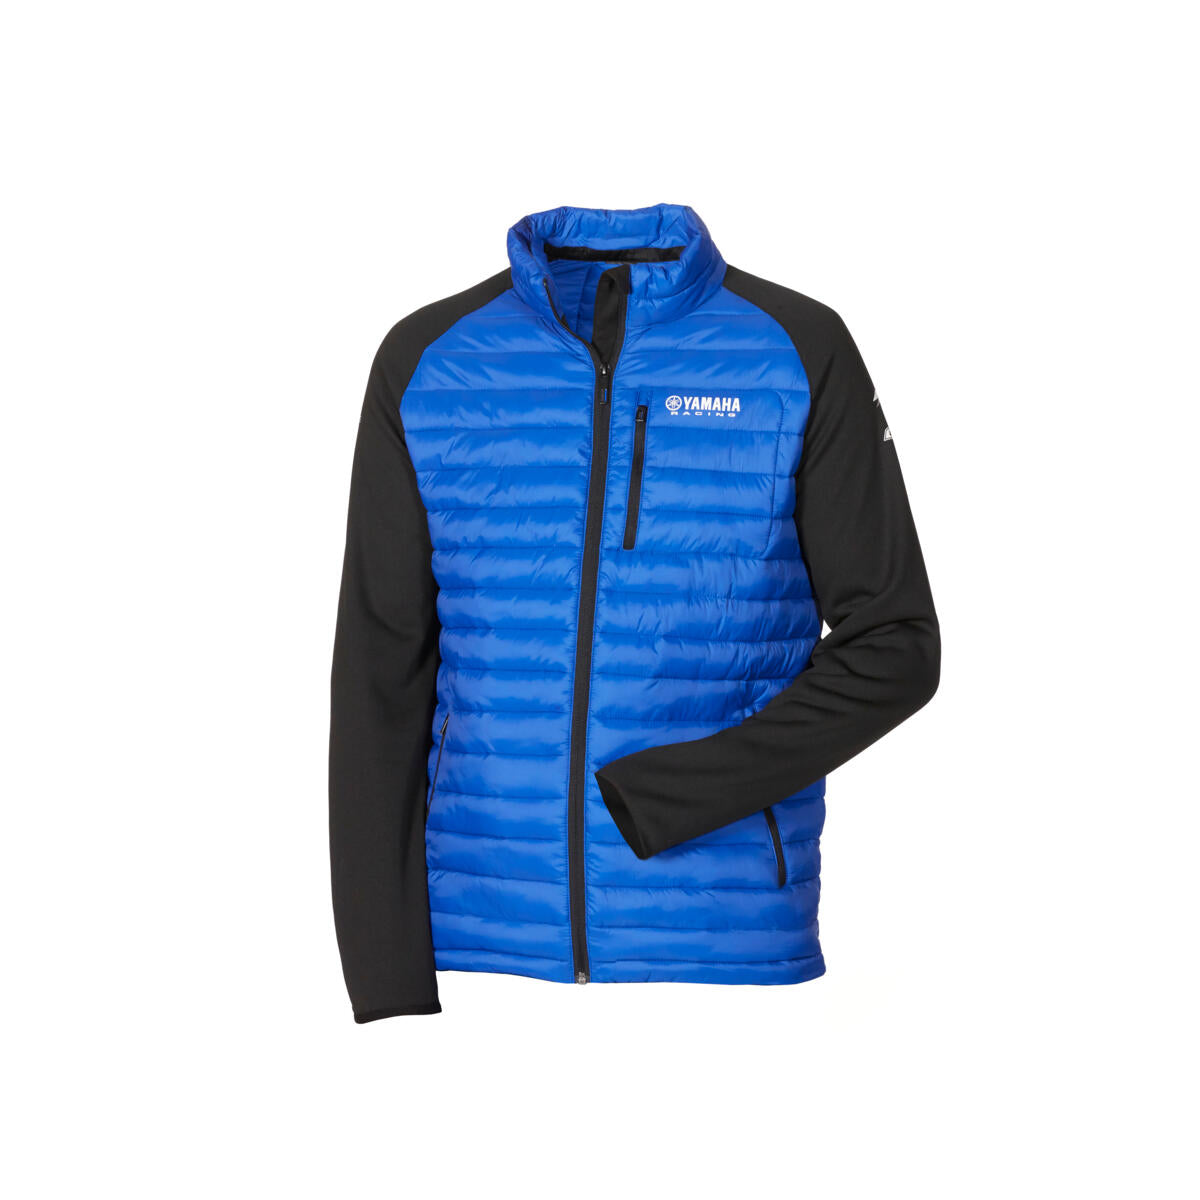 Paddock Blue Men's Hybrid Jacket